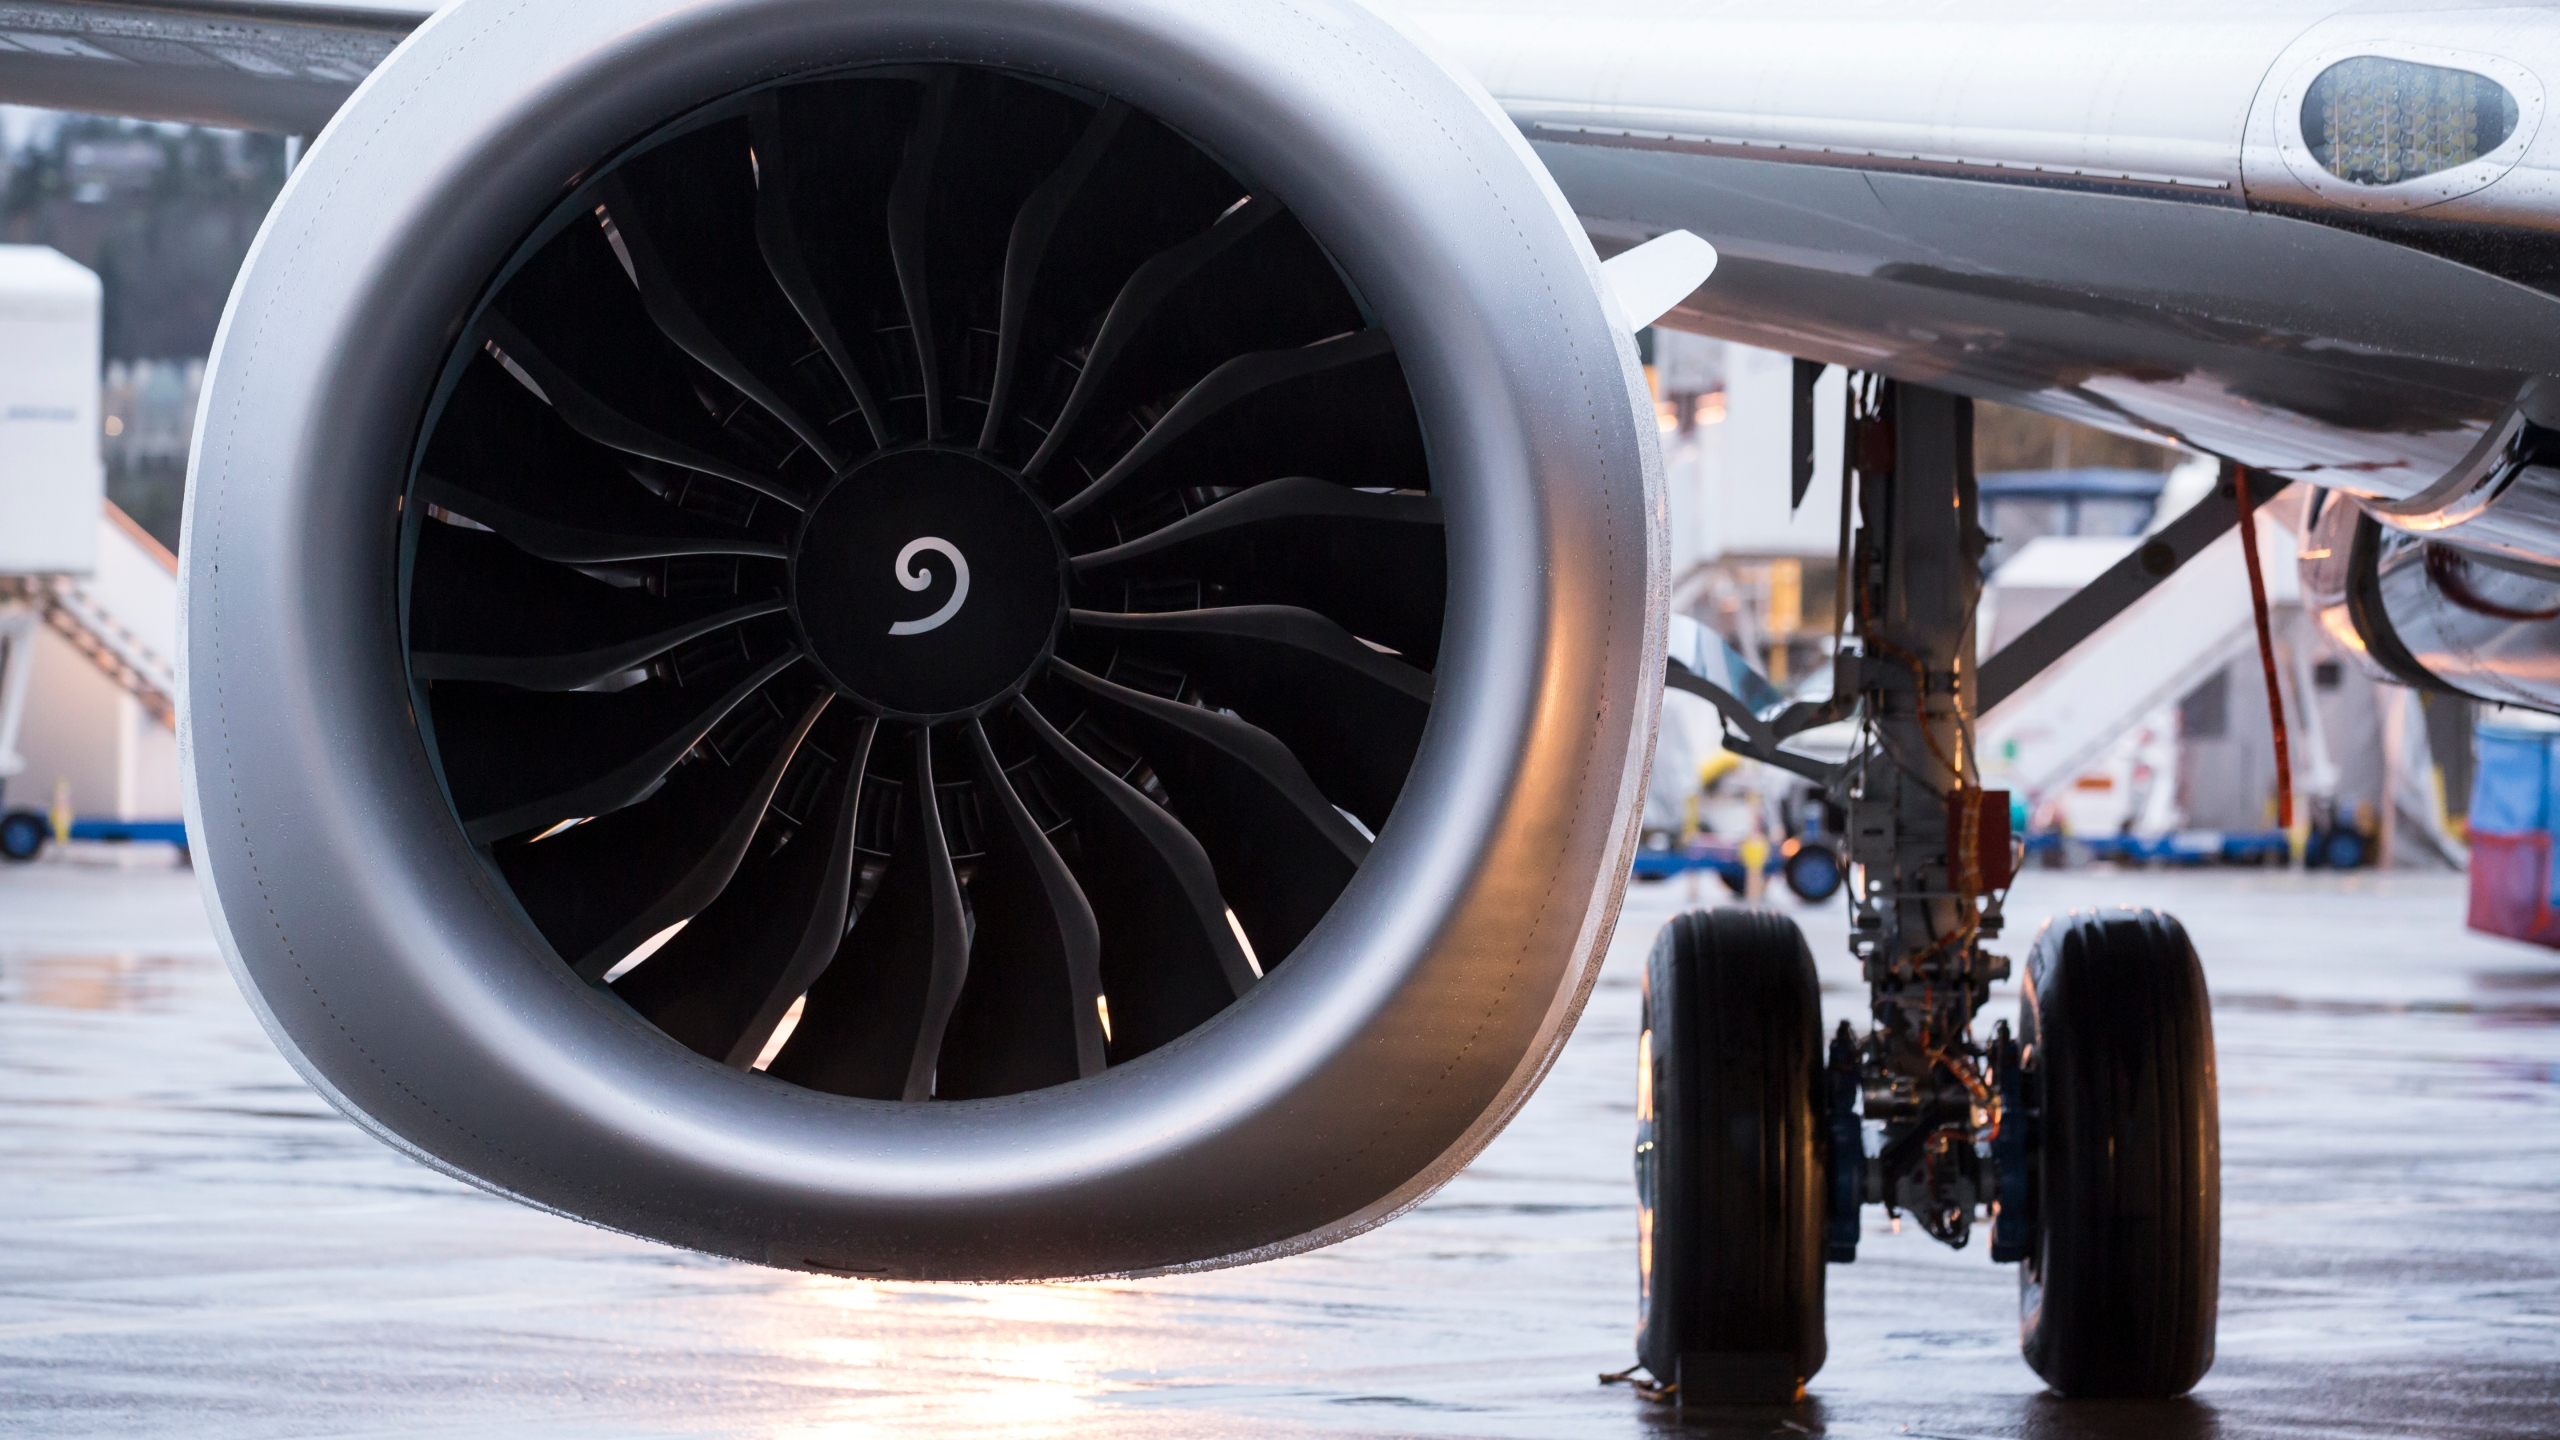 A plane engine is seen in this file photo from Dec. 8, 2015.(Credit: Stephen Brashear/Getty Images)